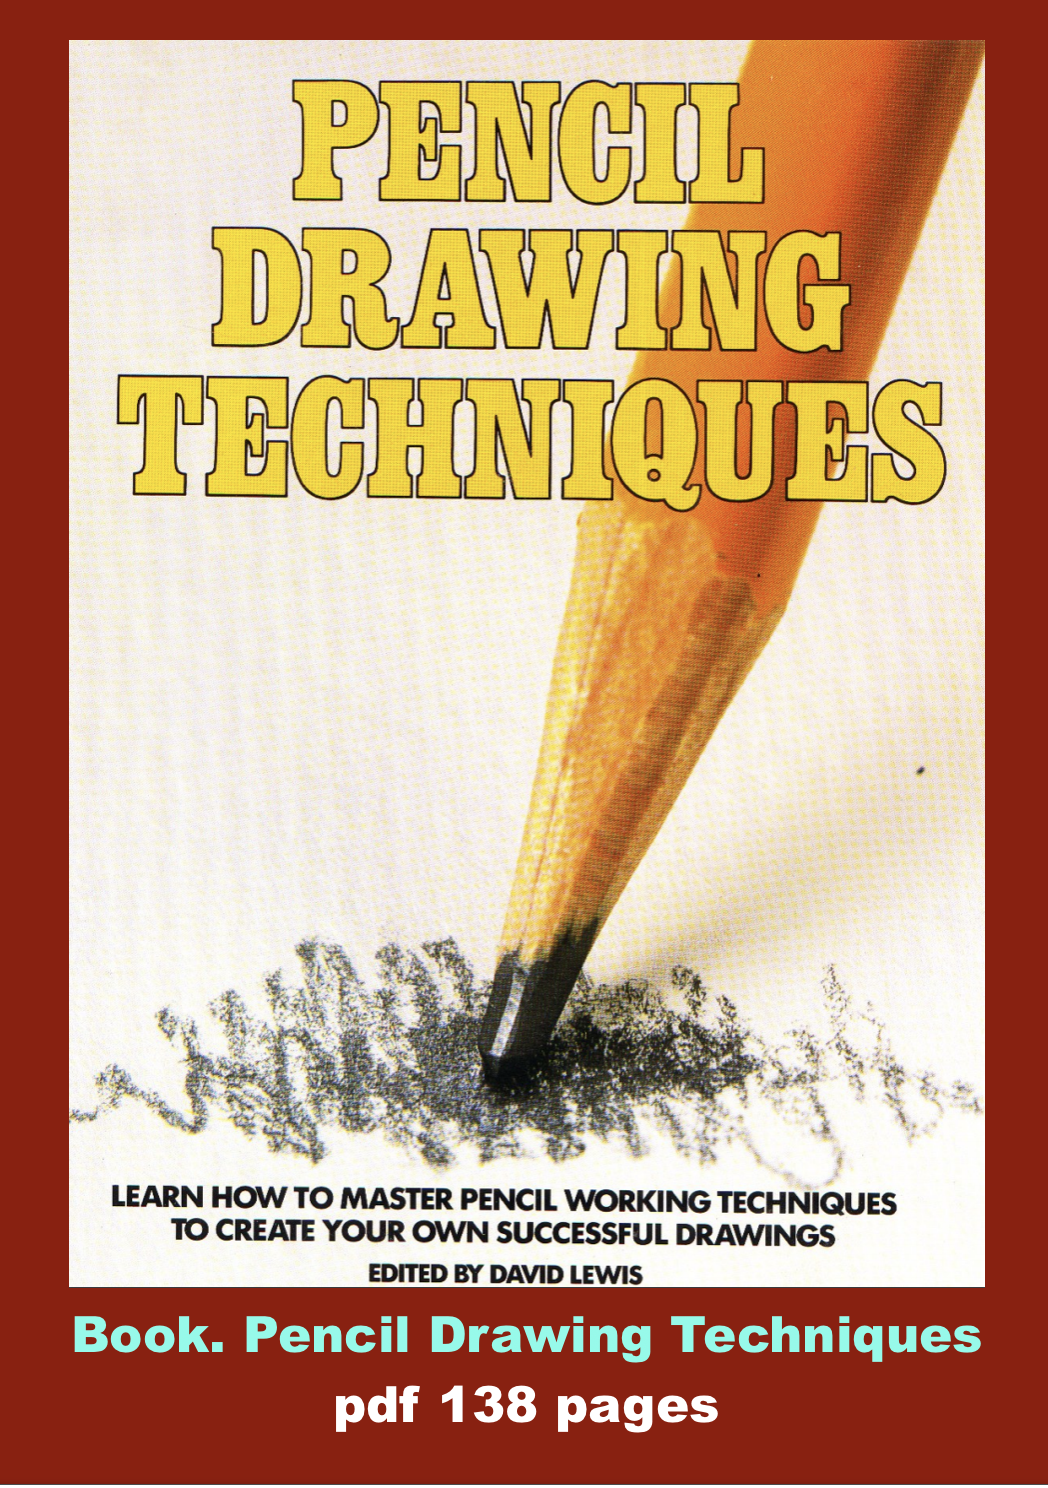 Book. Pencil Drawing Techniques. edited by David Lewis. pdf 138 pages????? If you think I have broken copyright in any of my pins ...